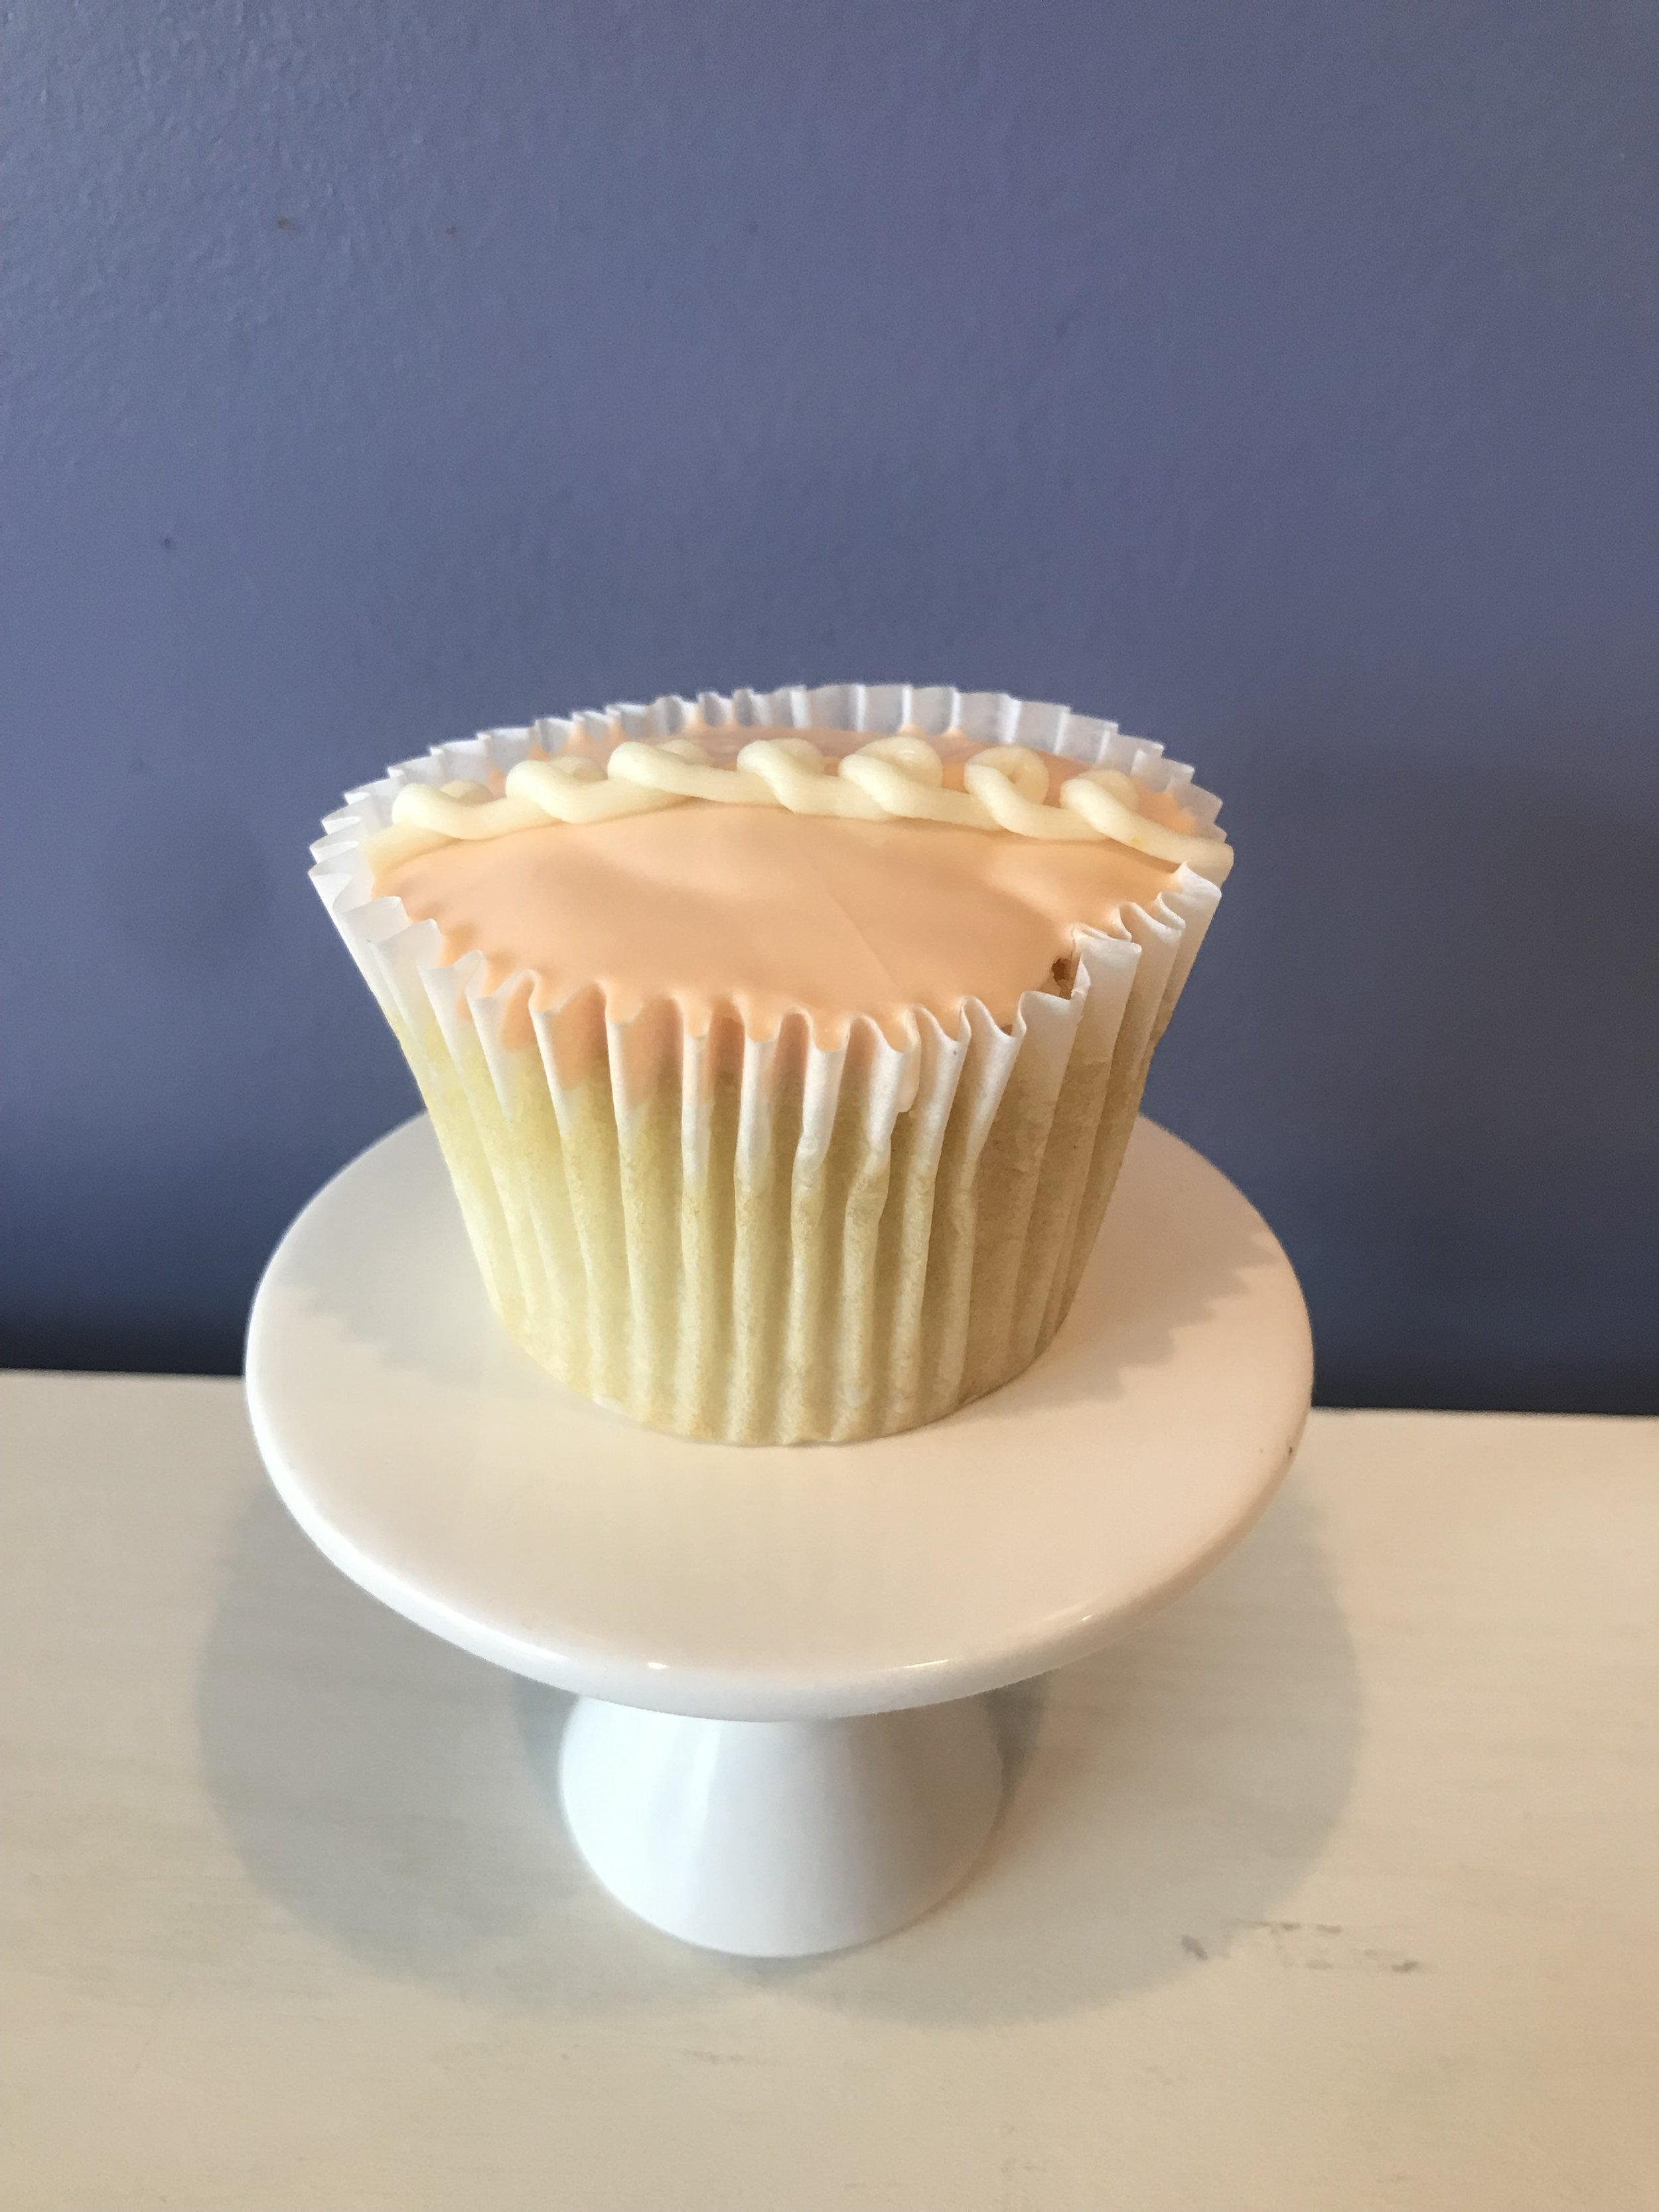 Orange Lunchbox - Vanilla cake filled with orange buttercream, topped with orange glaze.Vegan and Gluten Free available